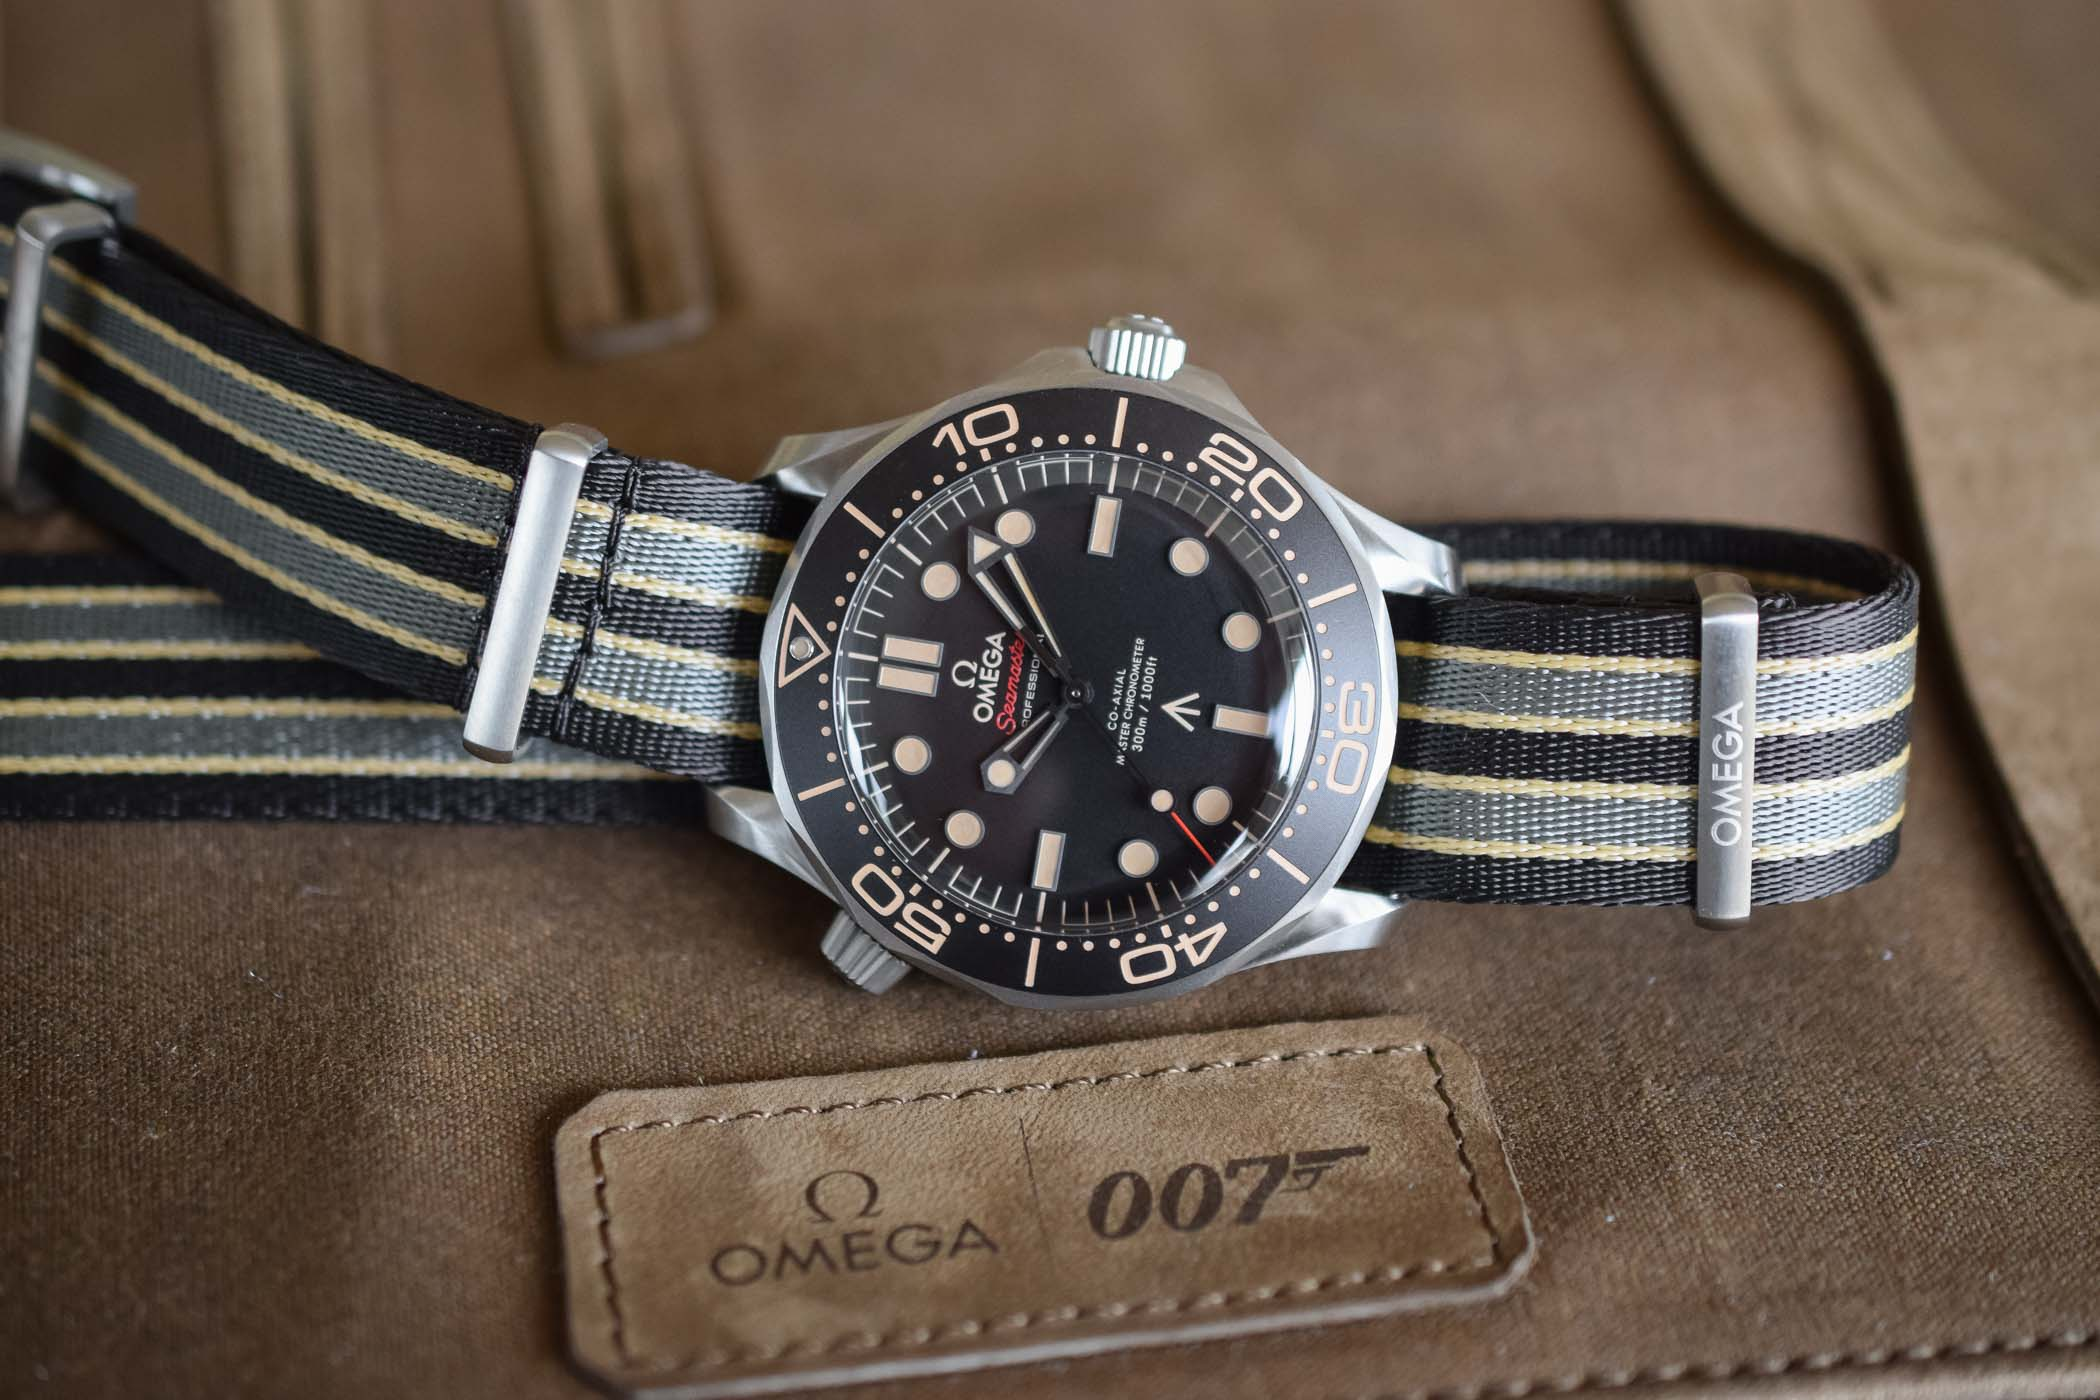 Omega Seamaster Diver 300M 007 Edition 210.92.42.20.01.001